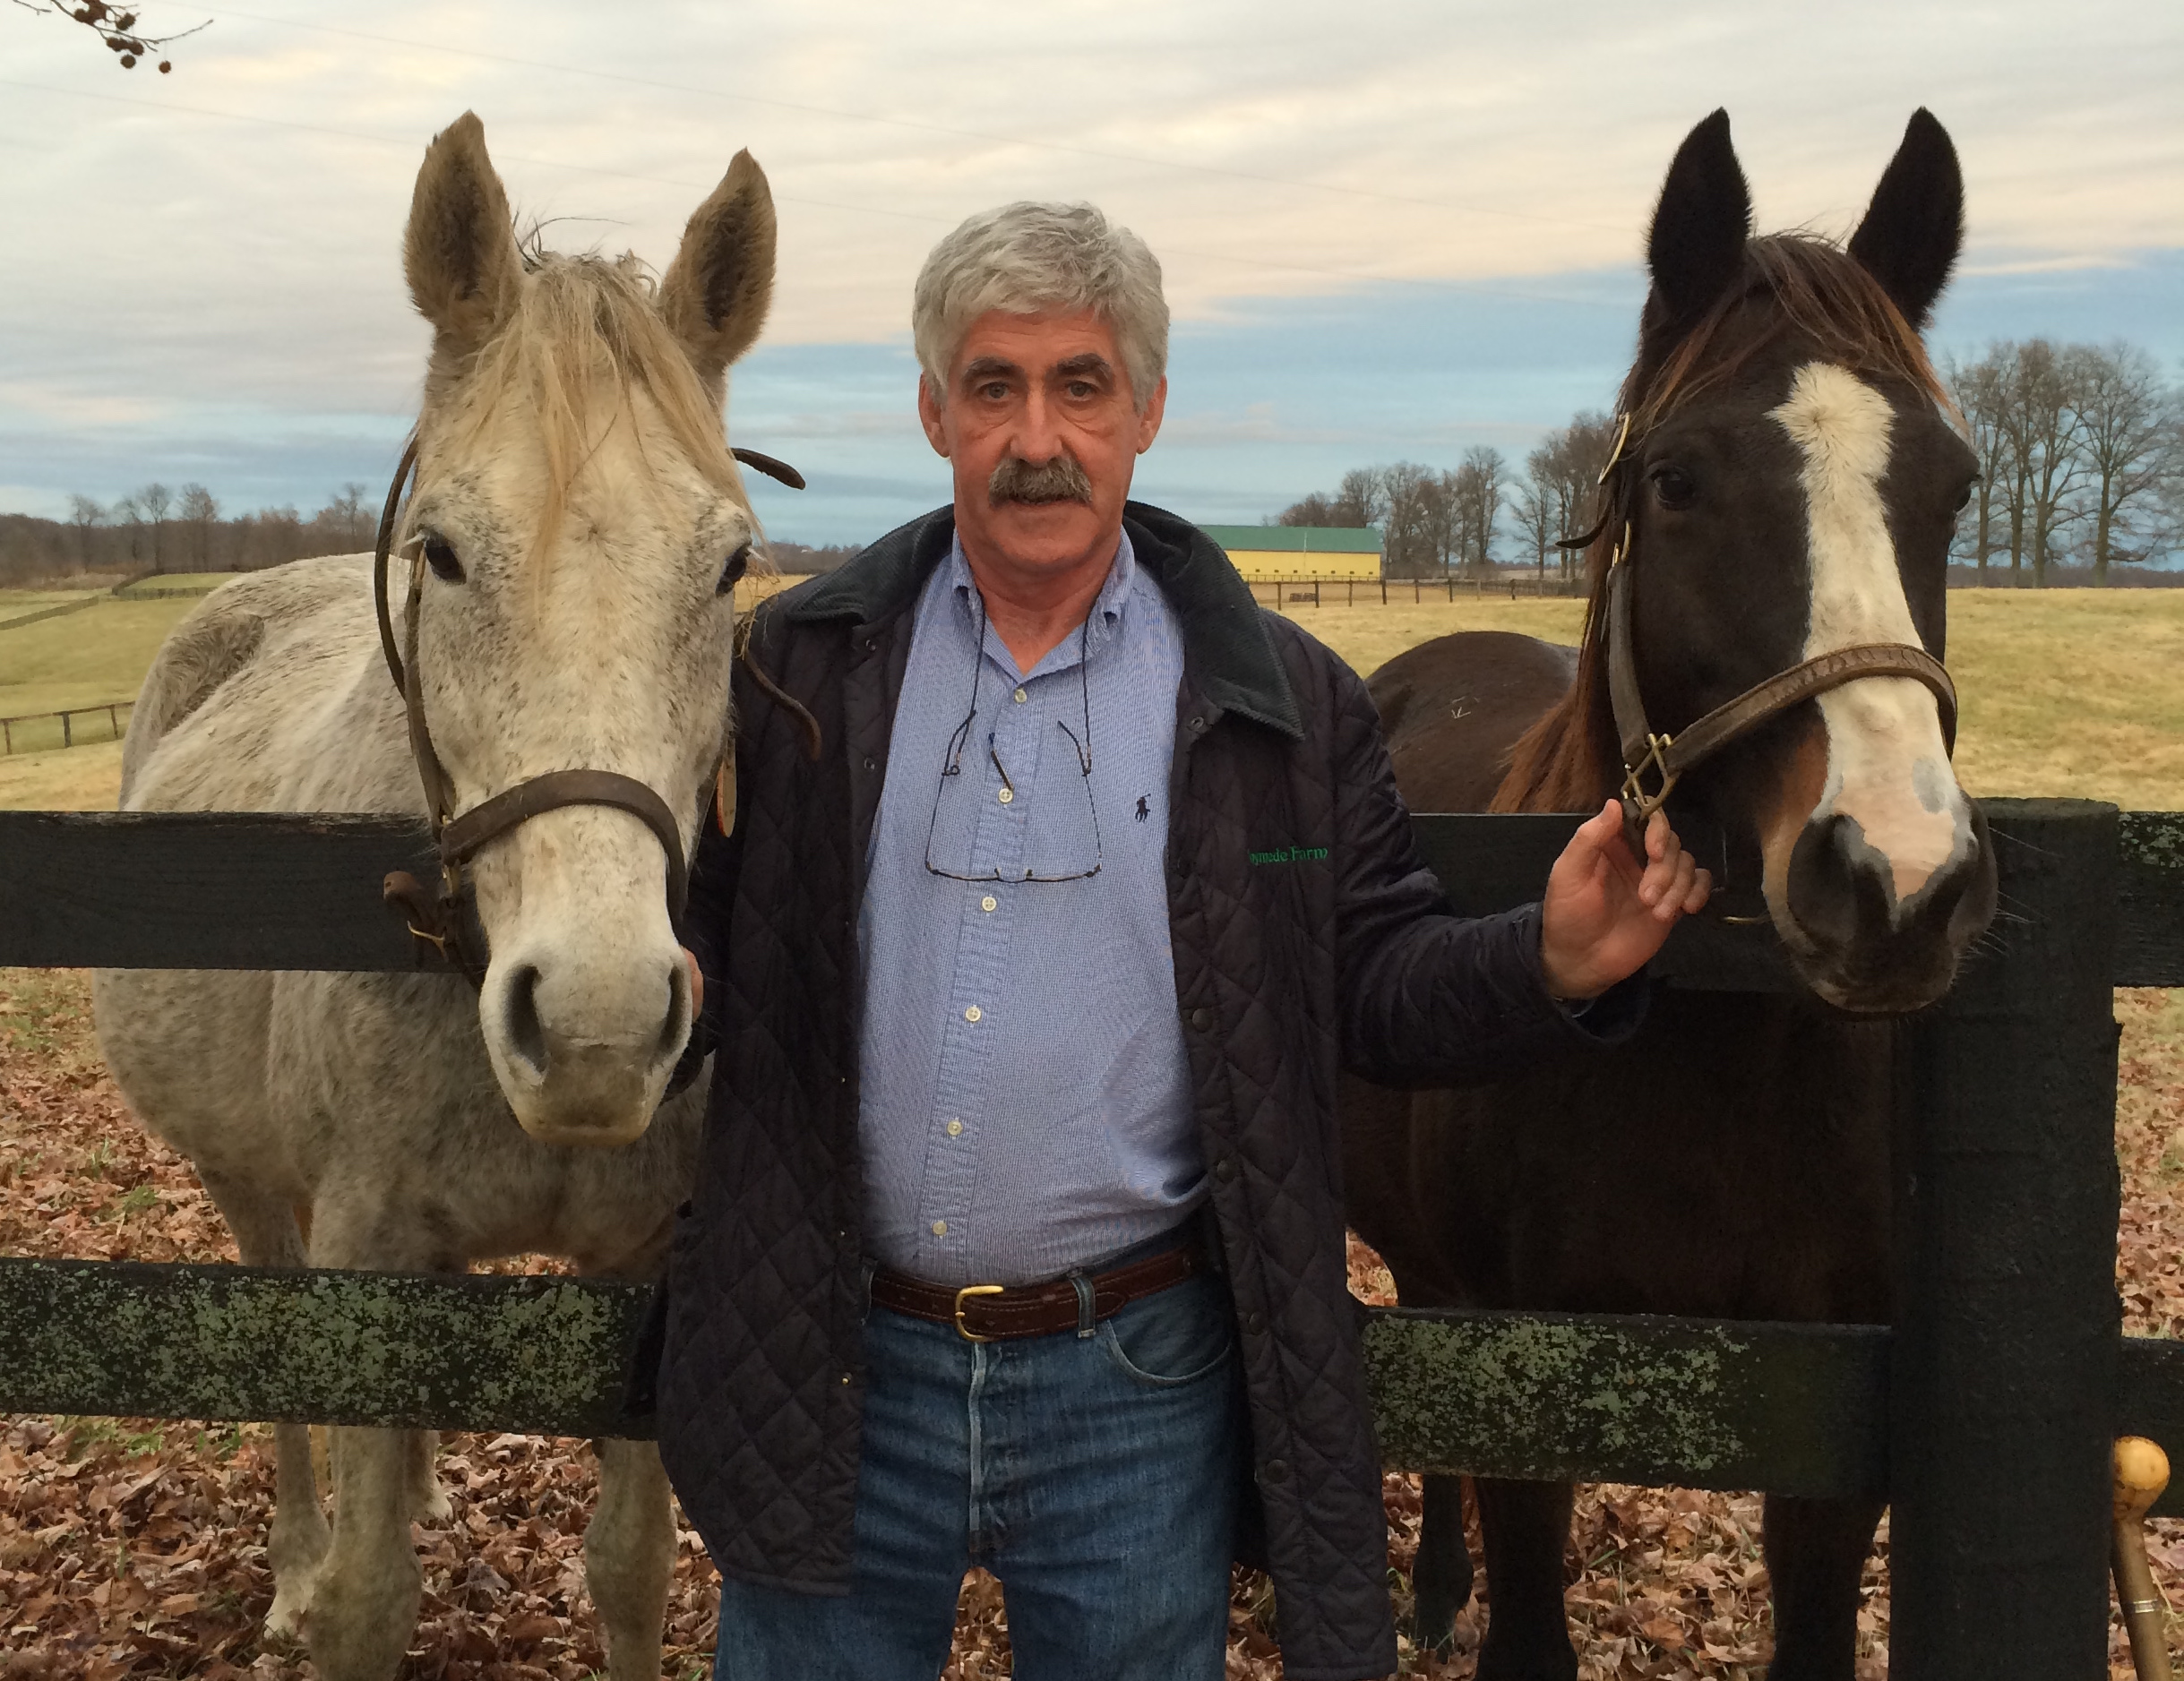 Martin O'Dowd at Runnymede Farm with Night Edition (left, dam of G1 winner Jaycito) and Alcina